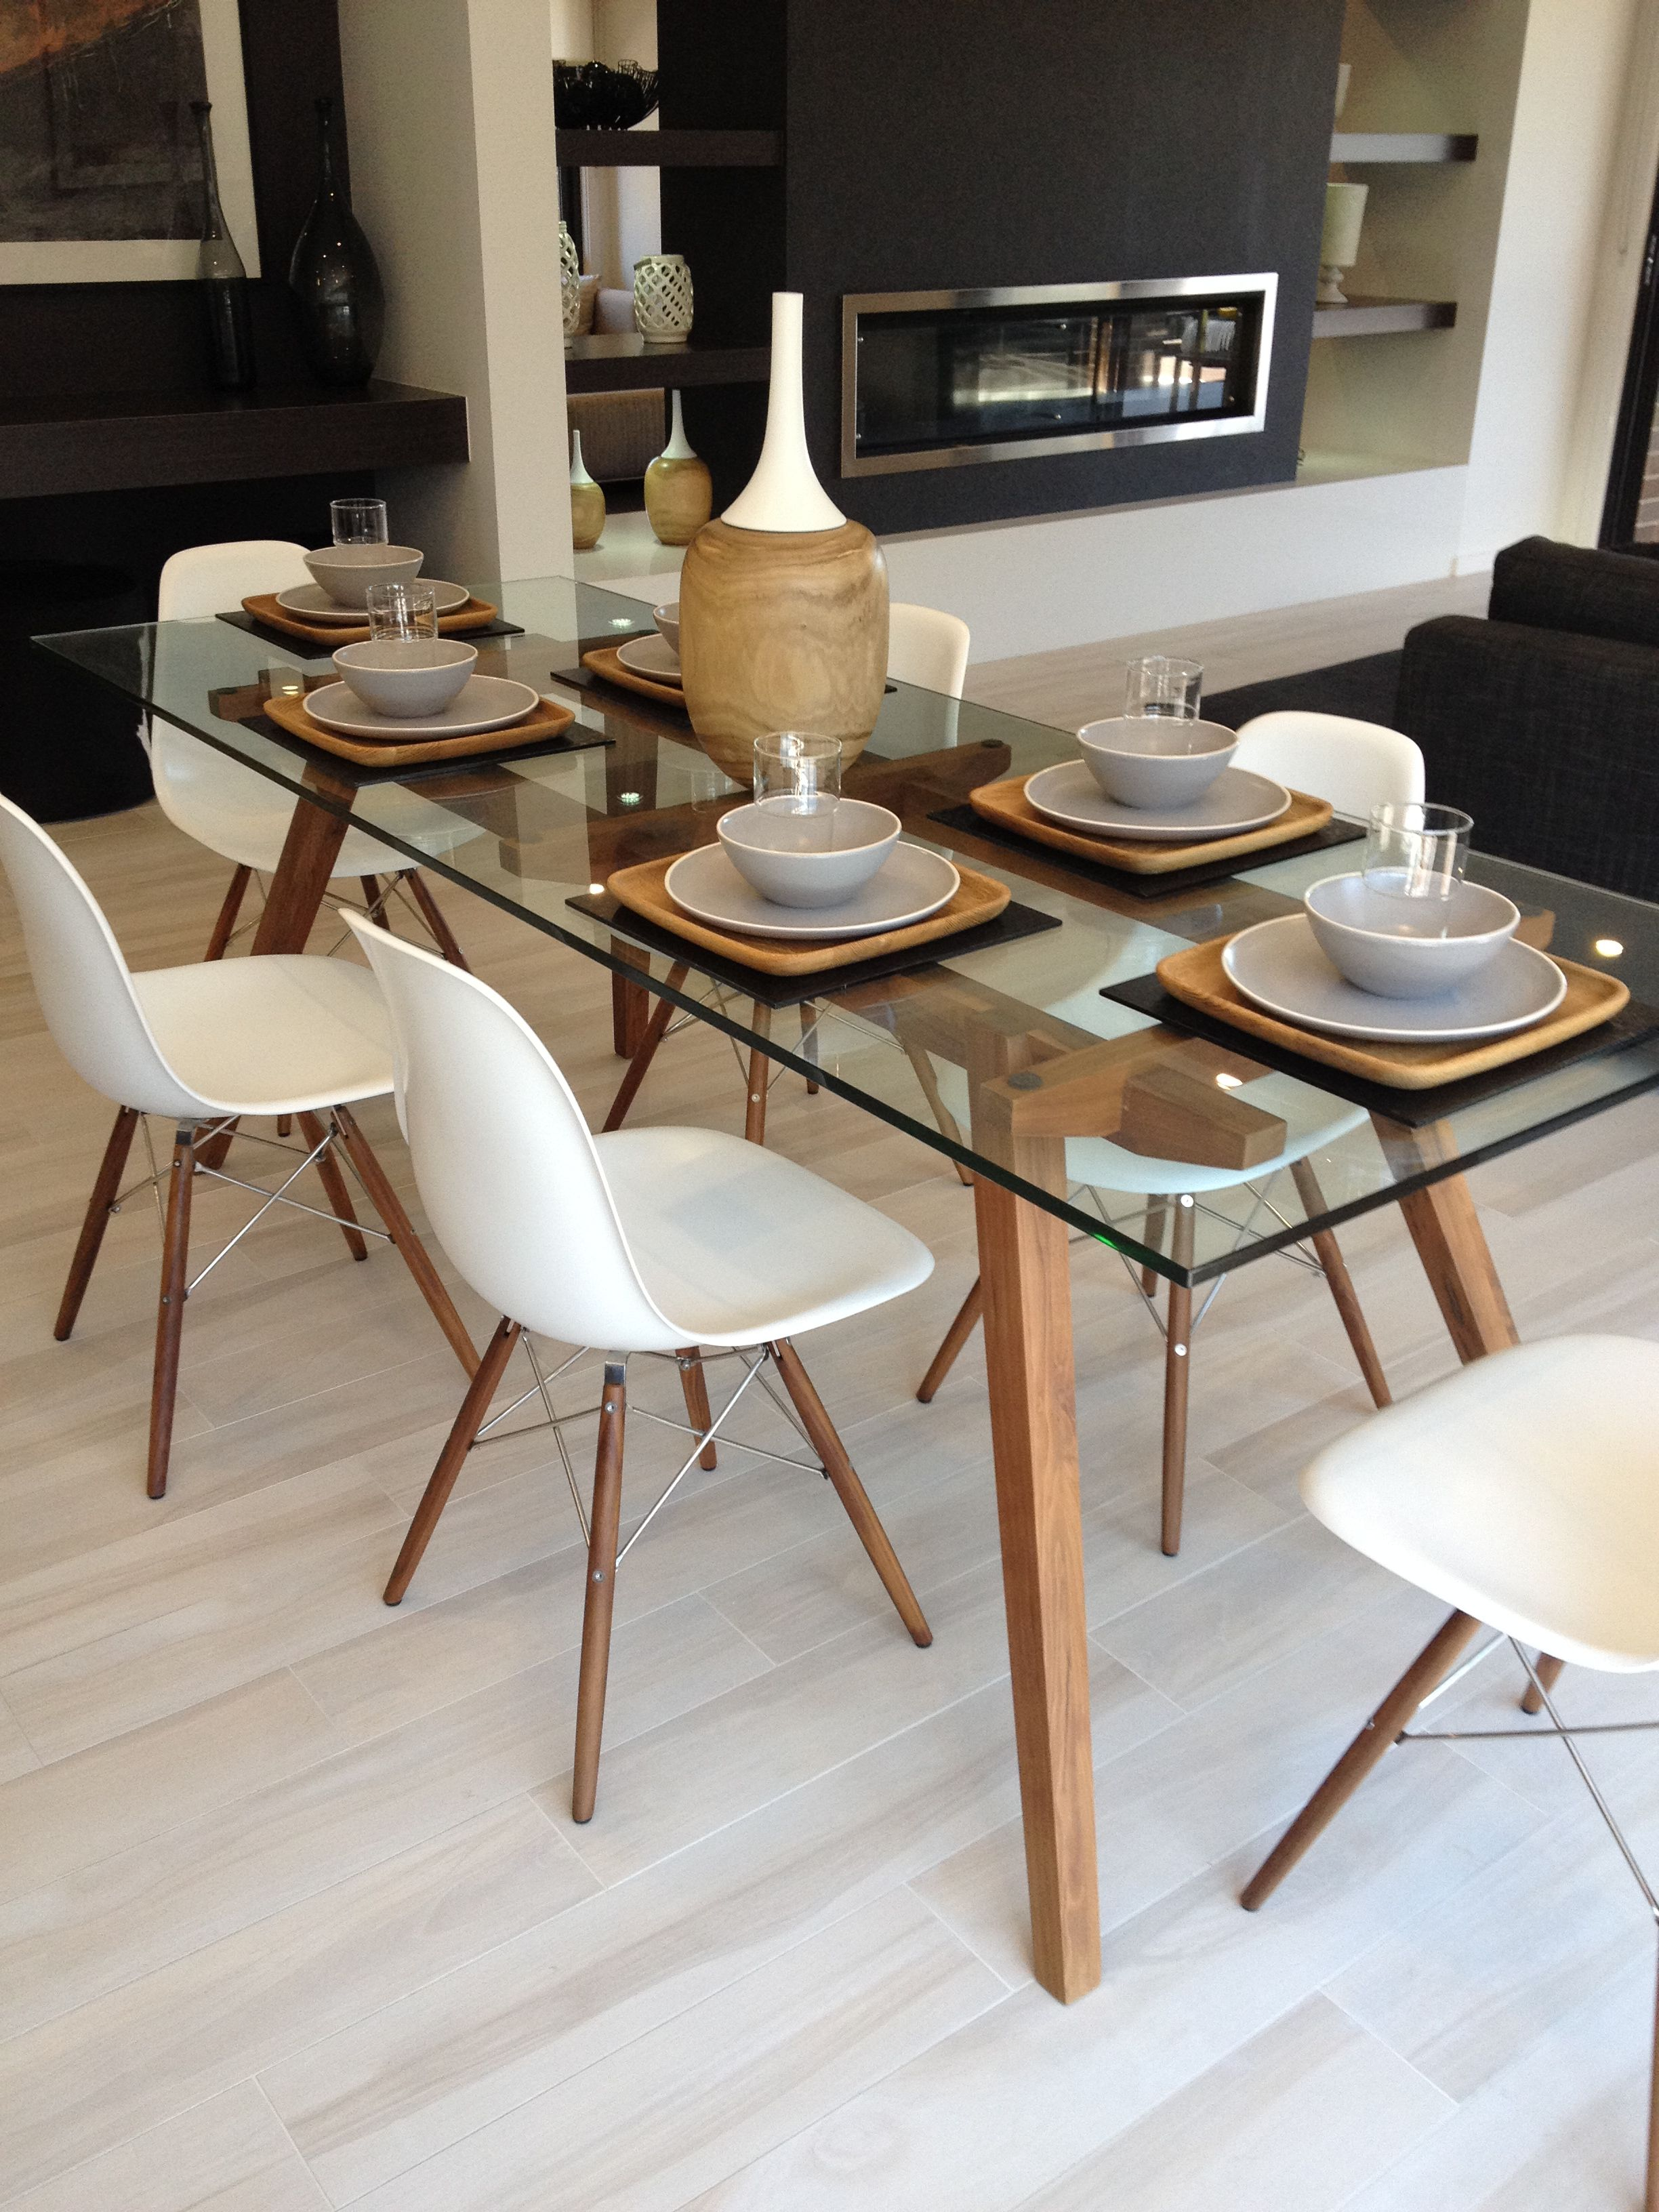 Sticotti Glass Dining Table And Eames Dining Chairs In Walnut Glass Dining Room Table Dining Room Table Set Modern Glass Dining Table